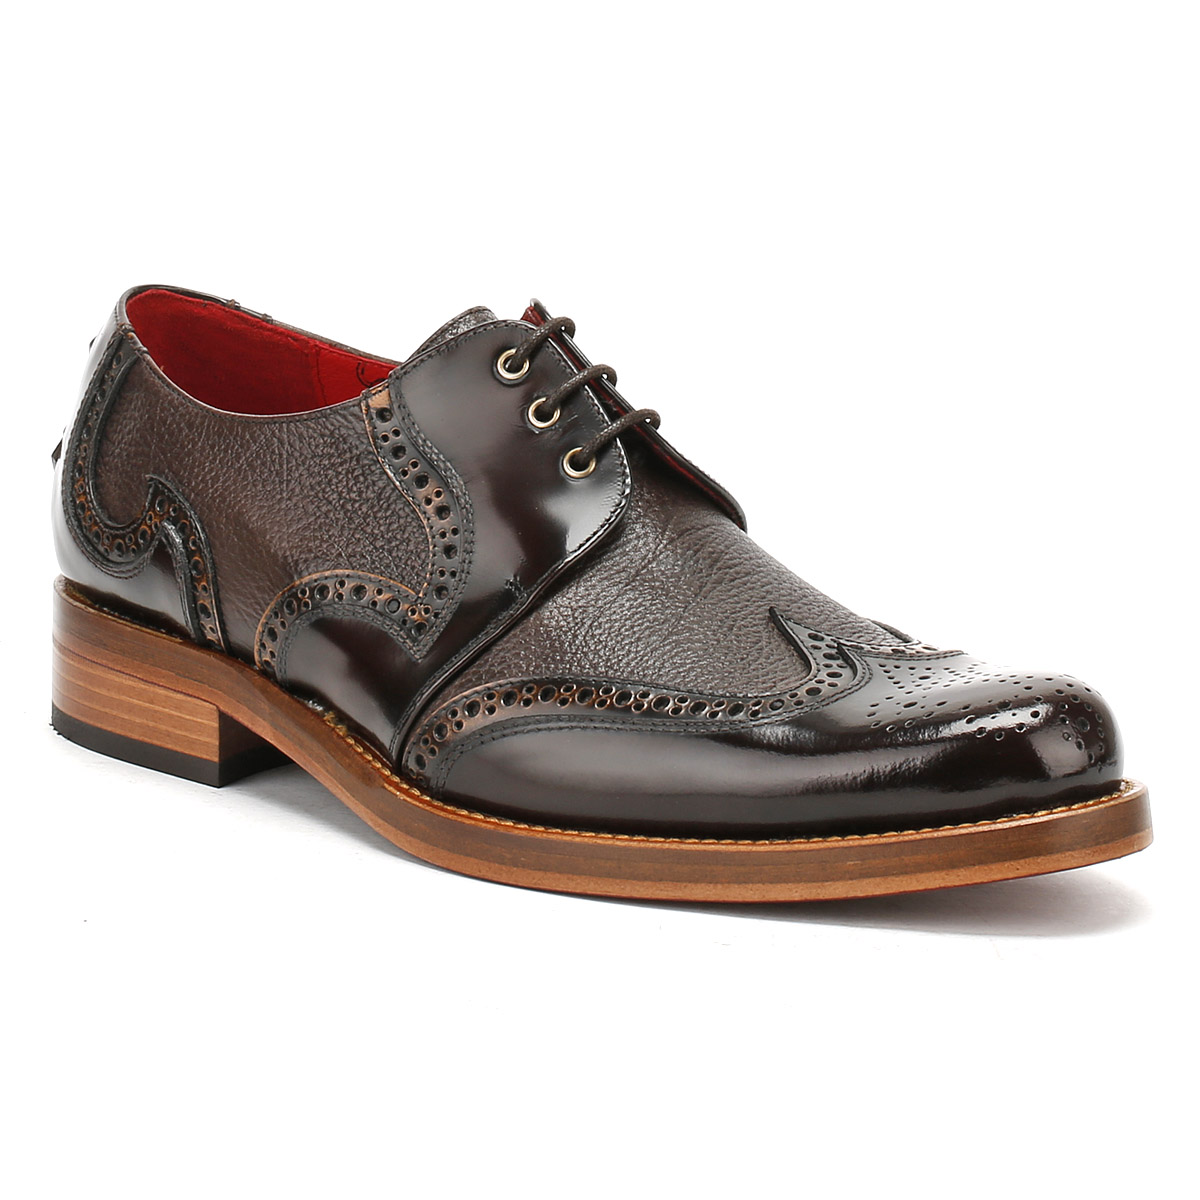 Jeffery West Mens Camel & Dark Brown & Brogue Shoes, Lace Up & Brown Premium Leather 7bcd1d